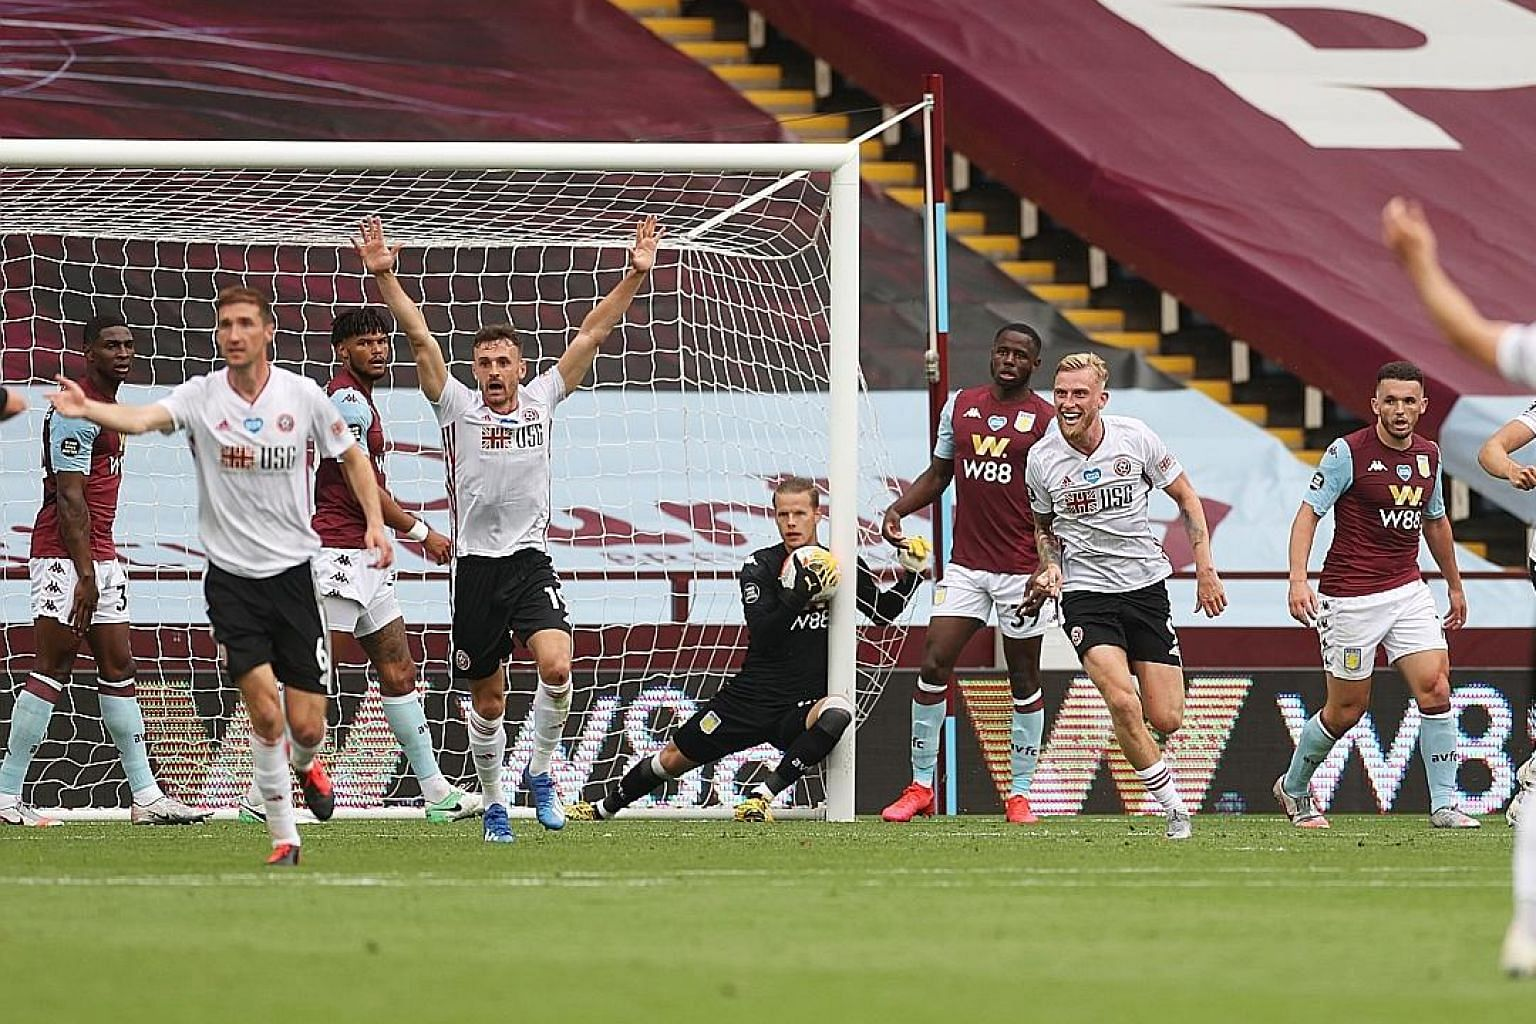 Sheffield United celebrating a goal against Villa prematurely on June 17. Goal-line technology failed to work and VAR could not intervene.